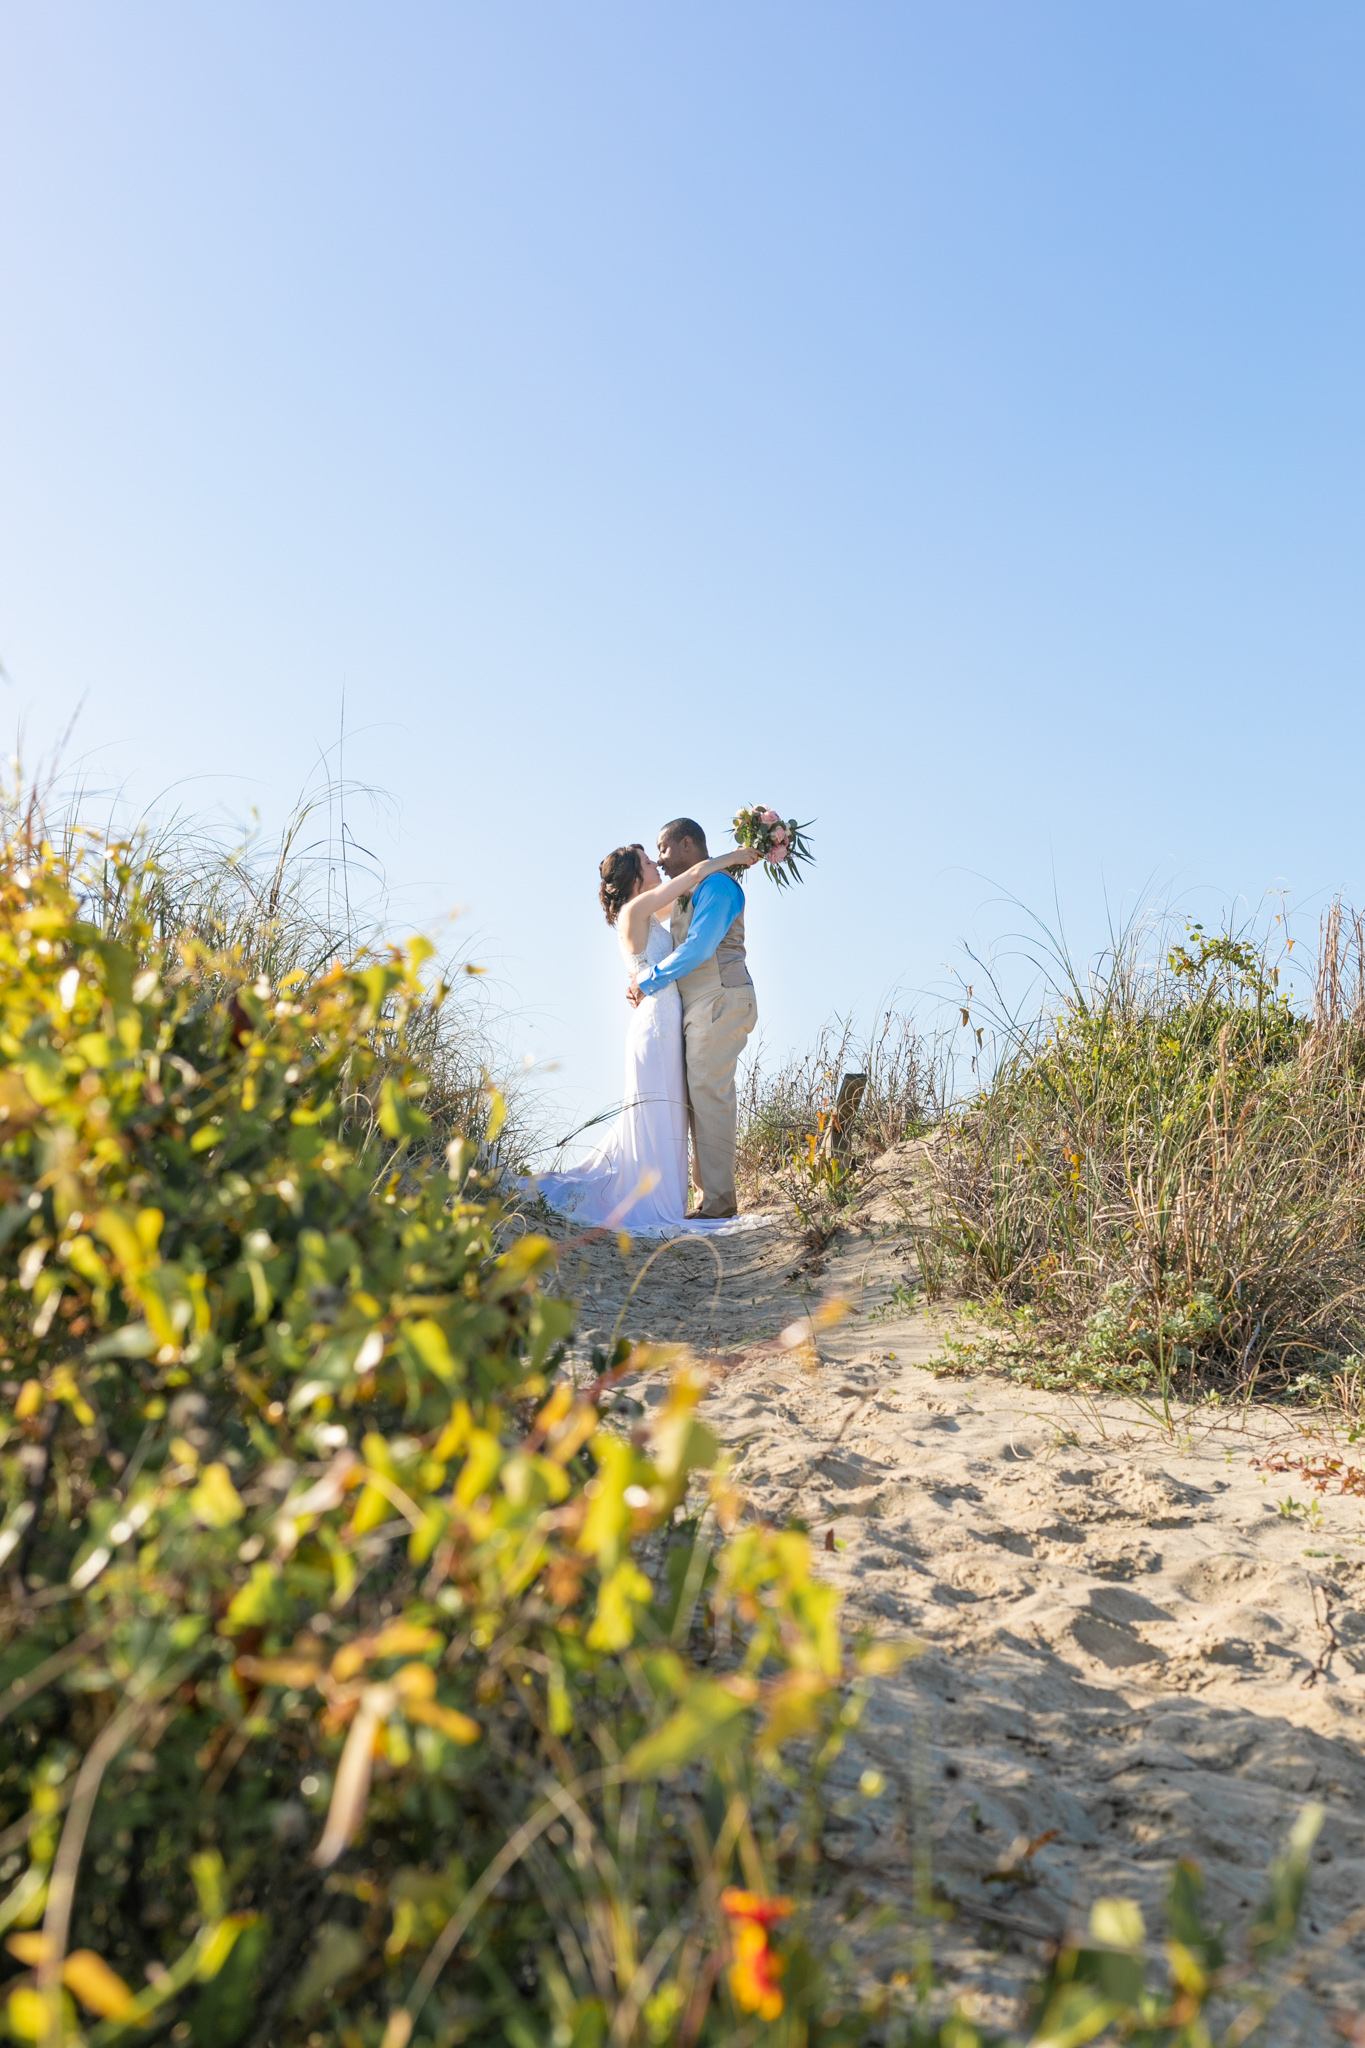 Wedding in Charleston, SC by Vision Balm. Wedding photographer, Charleston wedding photographer, wedding photography.